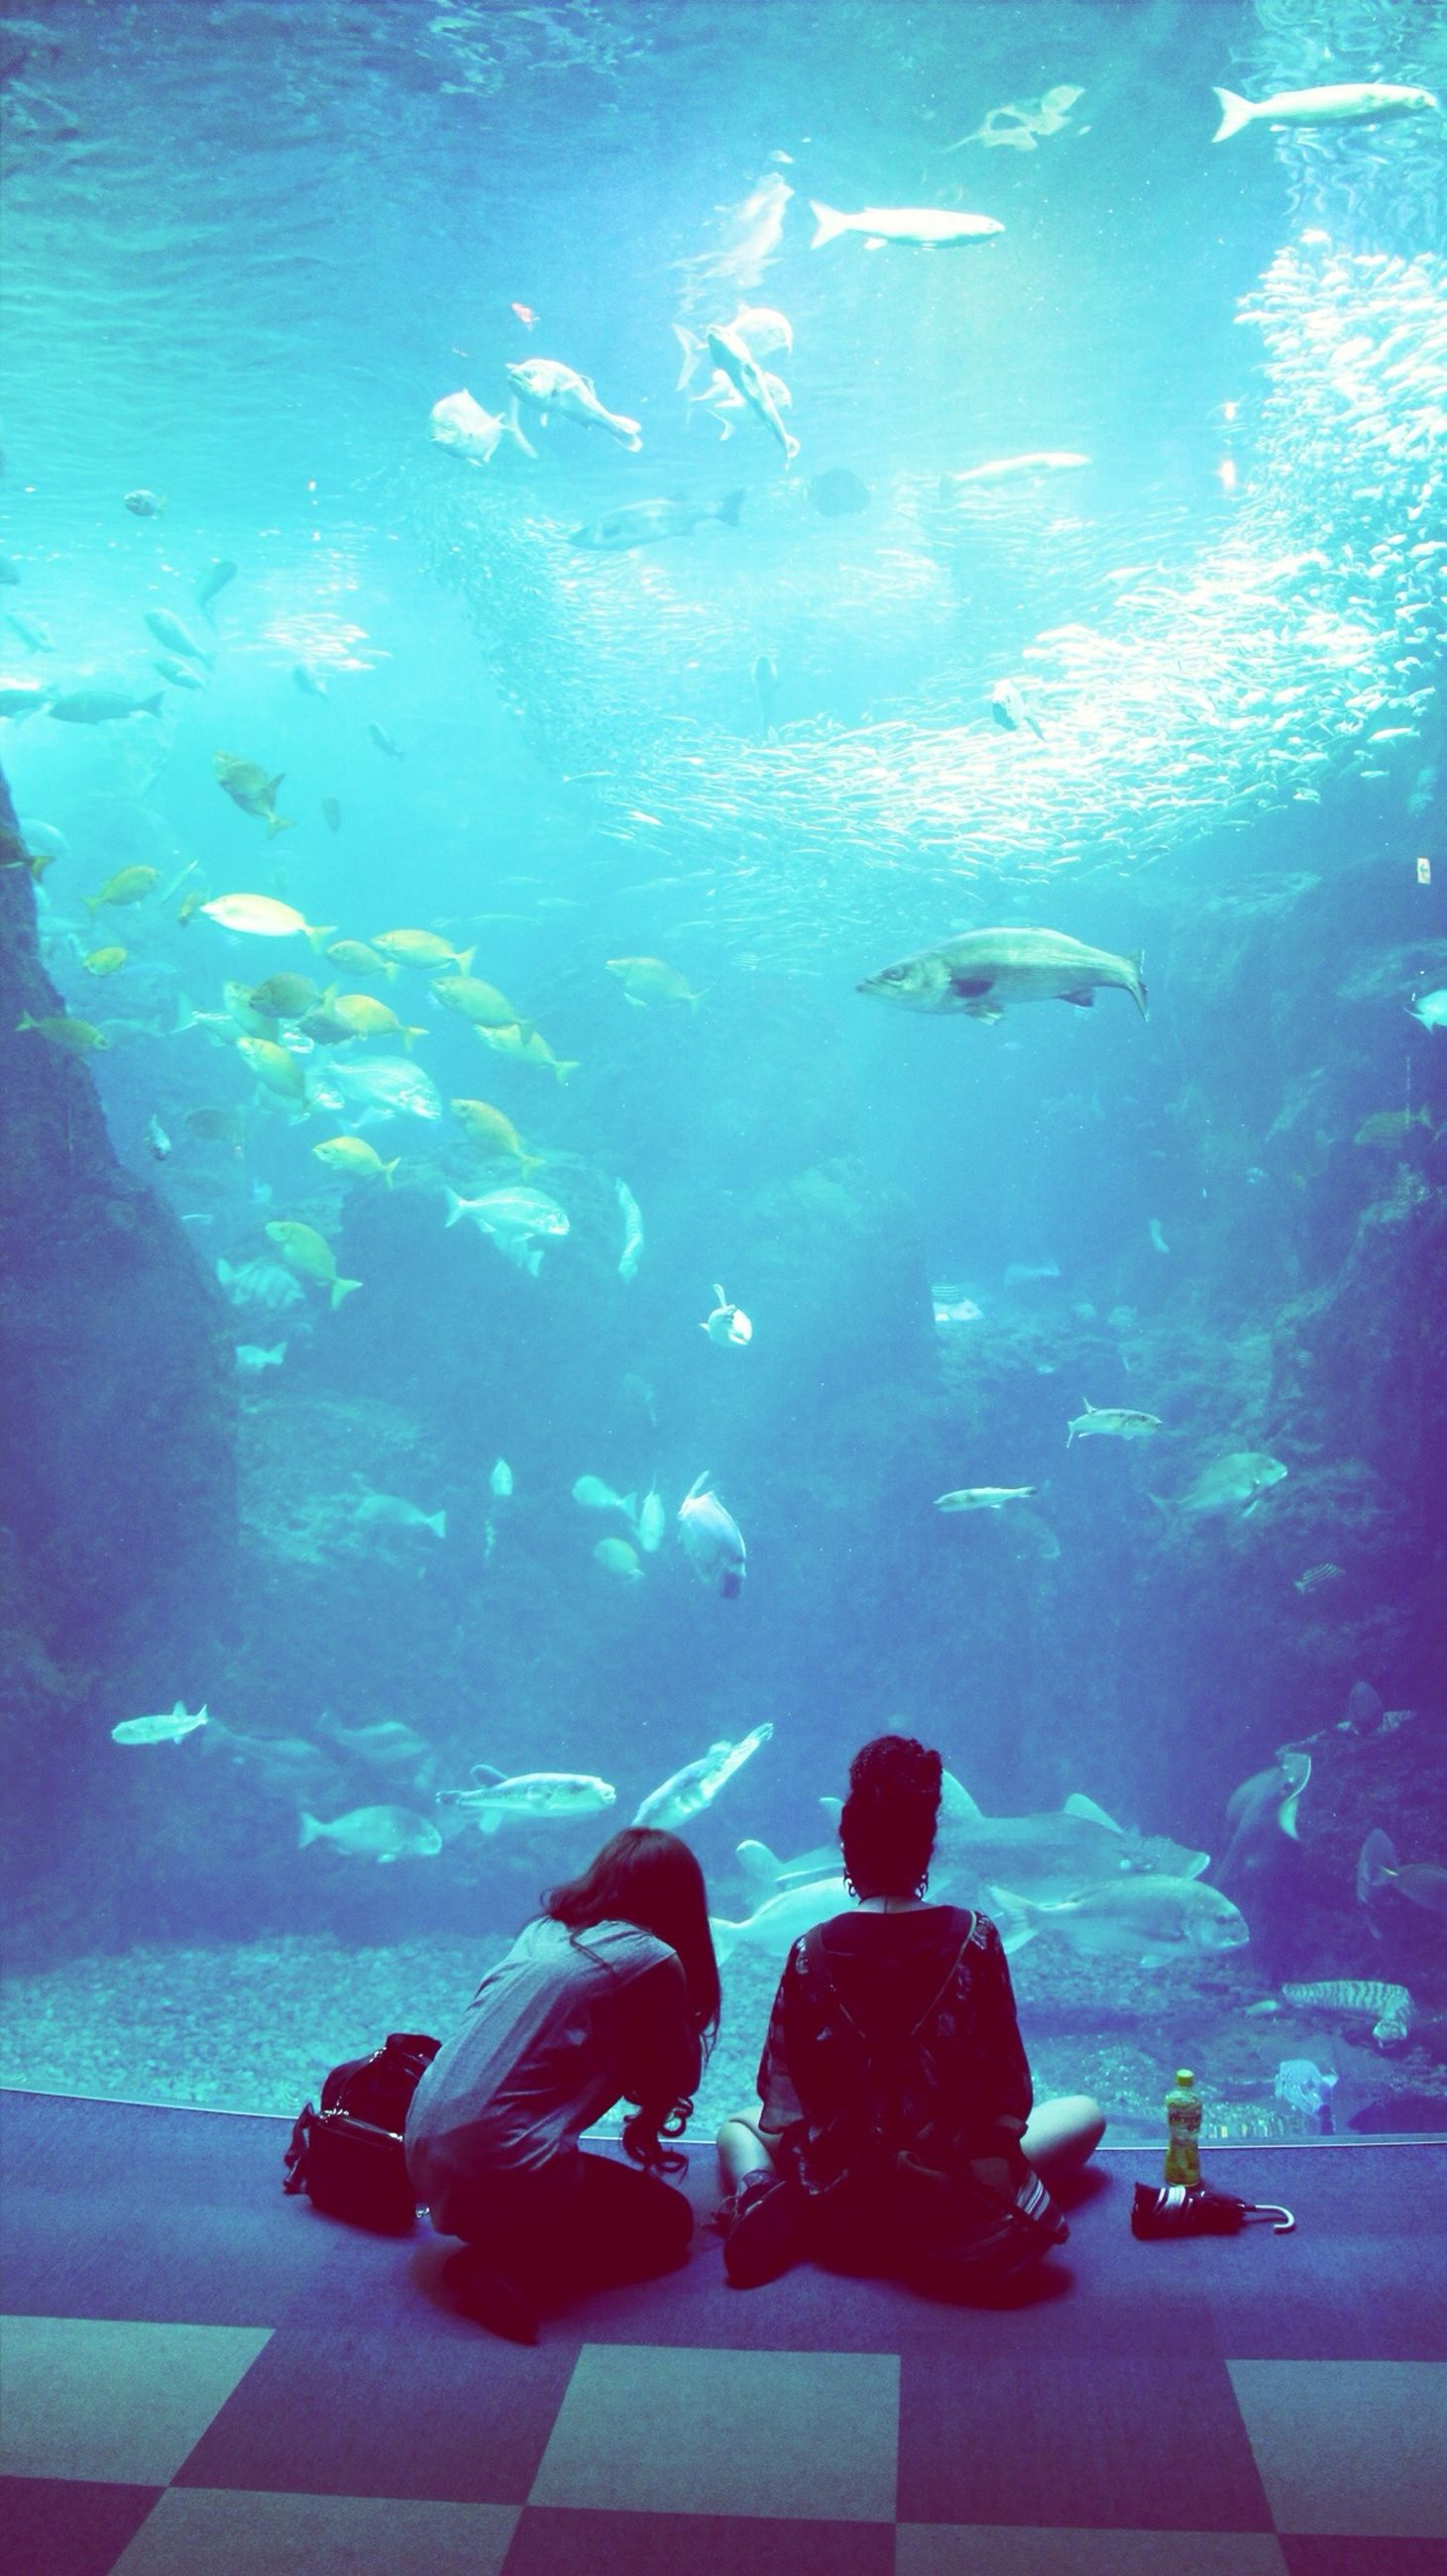 water, blue, sea, swimming, underwater, transparent, fish, indoors, sea life, animal themes, wildlife, nature, high angle view, undersea, beauty in nature, glass - material, animals in the wild, auto post production filter, day